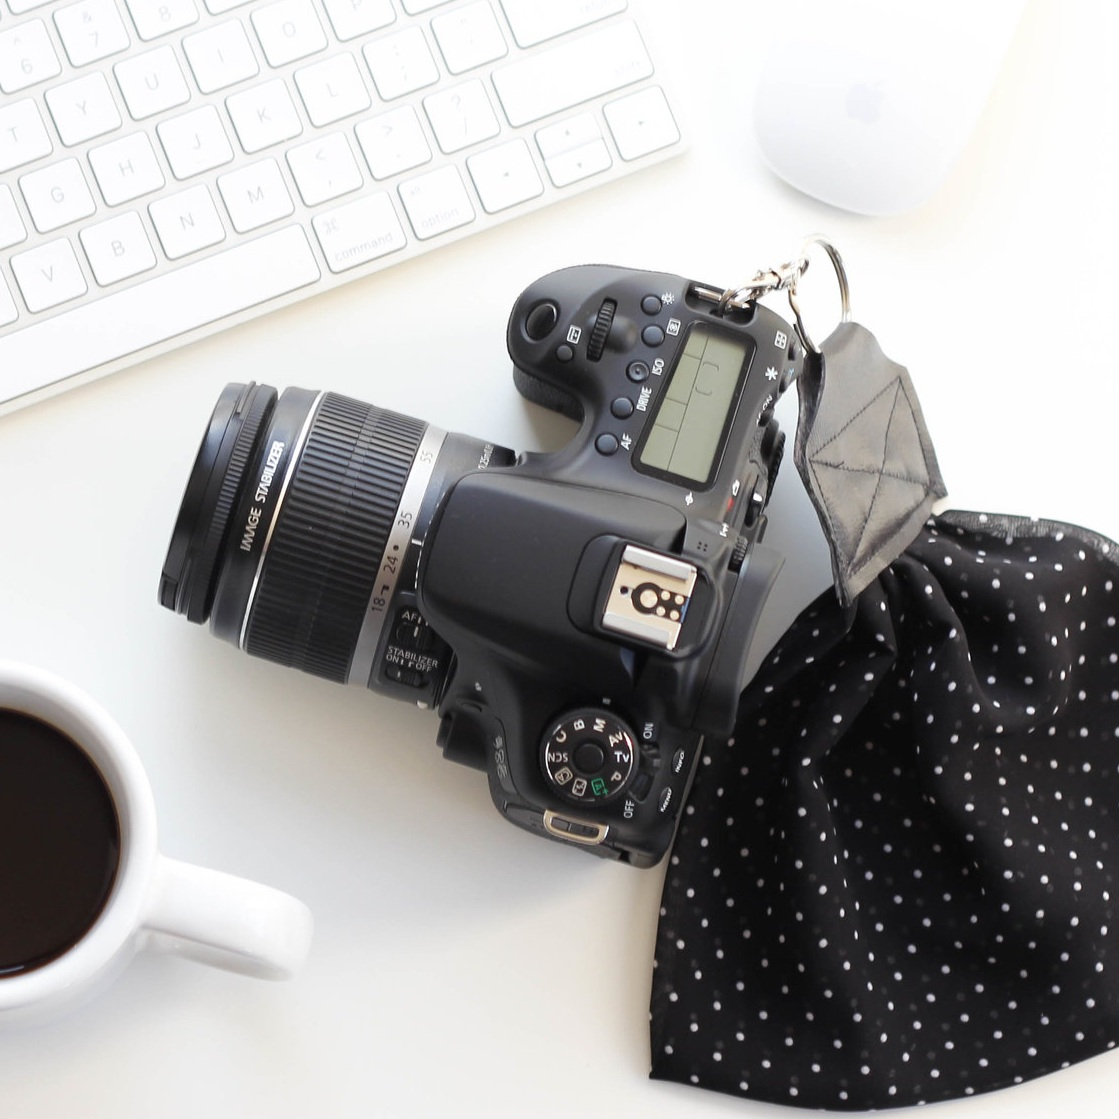 ADVANCED PHOTOGRAPHY CLASS - Have a big girl camera, but not sure how to use it? Let me help! I'm sharing my 12+ years of knowledge with you in a one day workshop like no other